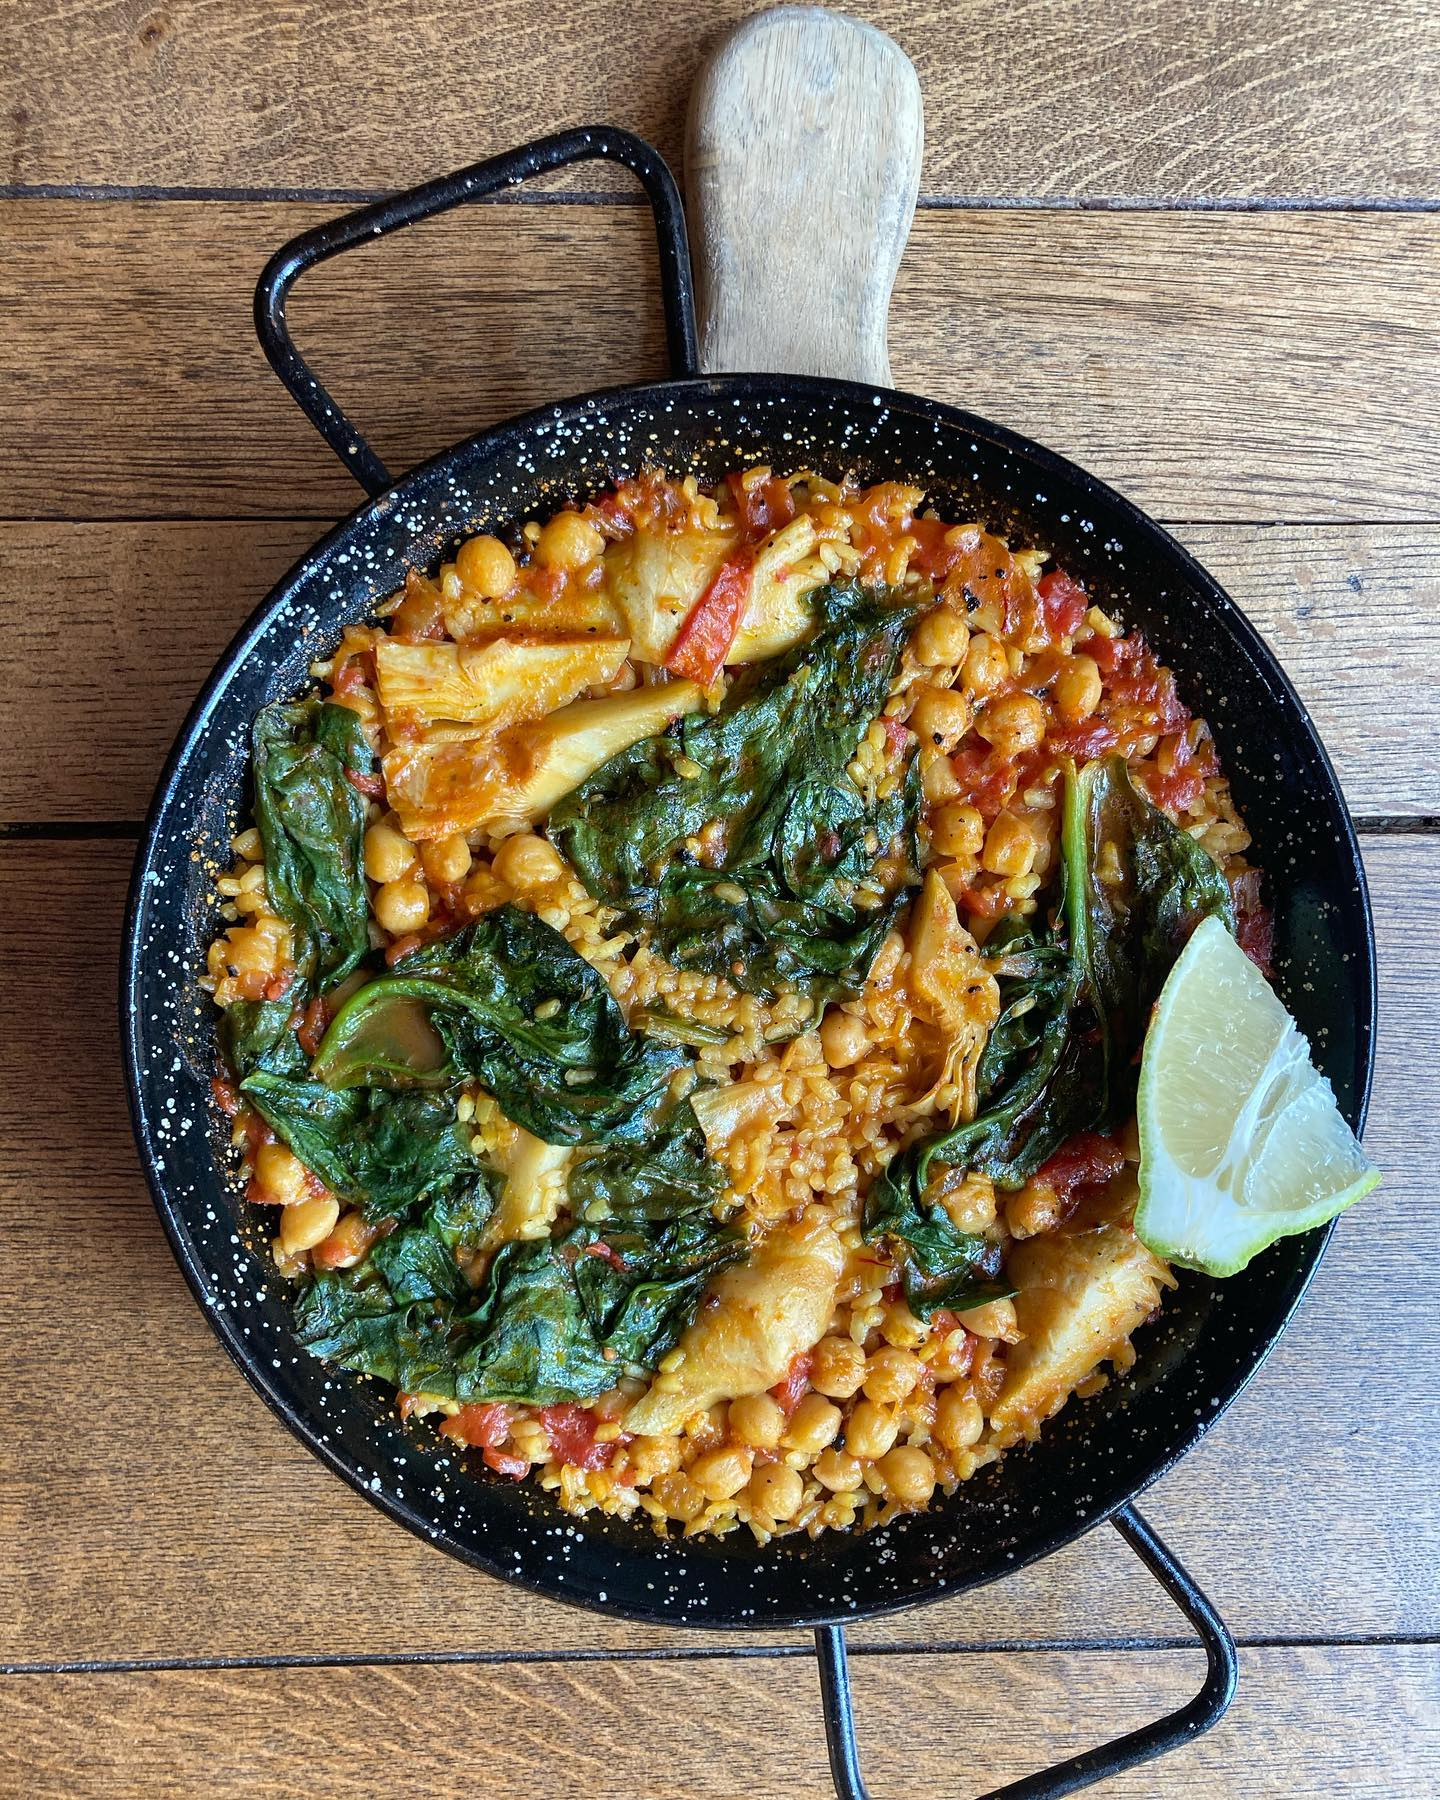 Have you tried our delicious paellas?   Choose between chicken and prawn, squid ink and cod or chickpea and artichoke !!   Book a table now in our secluded garden  #northlondonfood #northlondon #highgate #hampstead #foodporn #foodstagram #foodinspiration #foodie #paella #spanishfood #gardendining